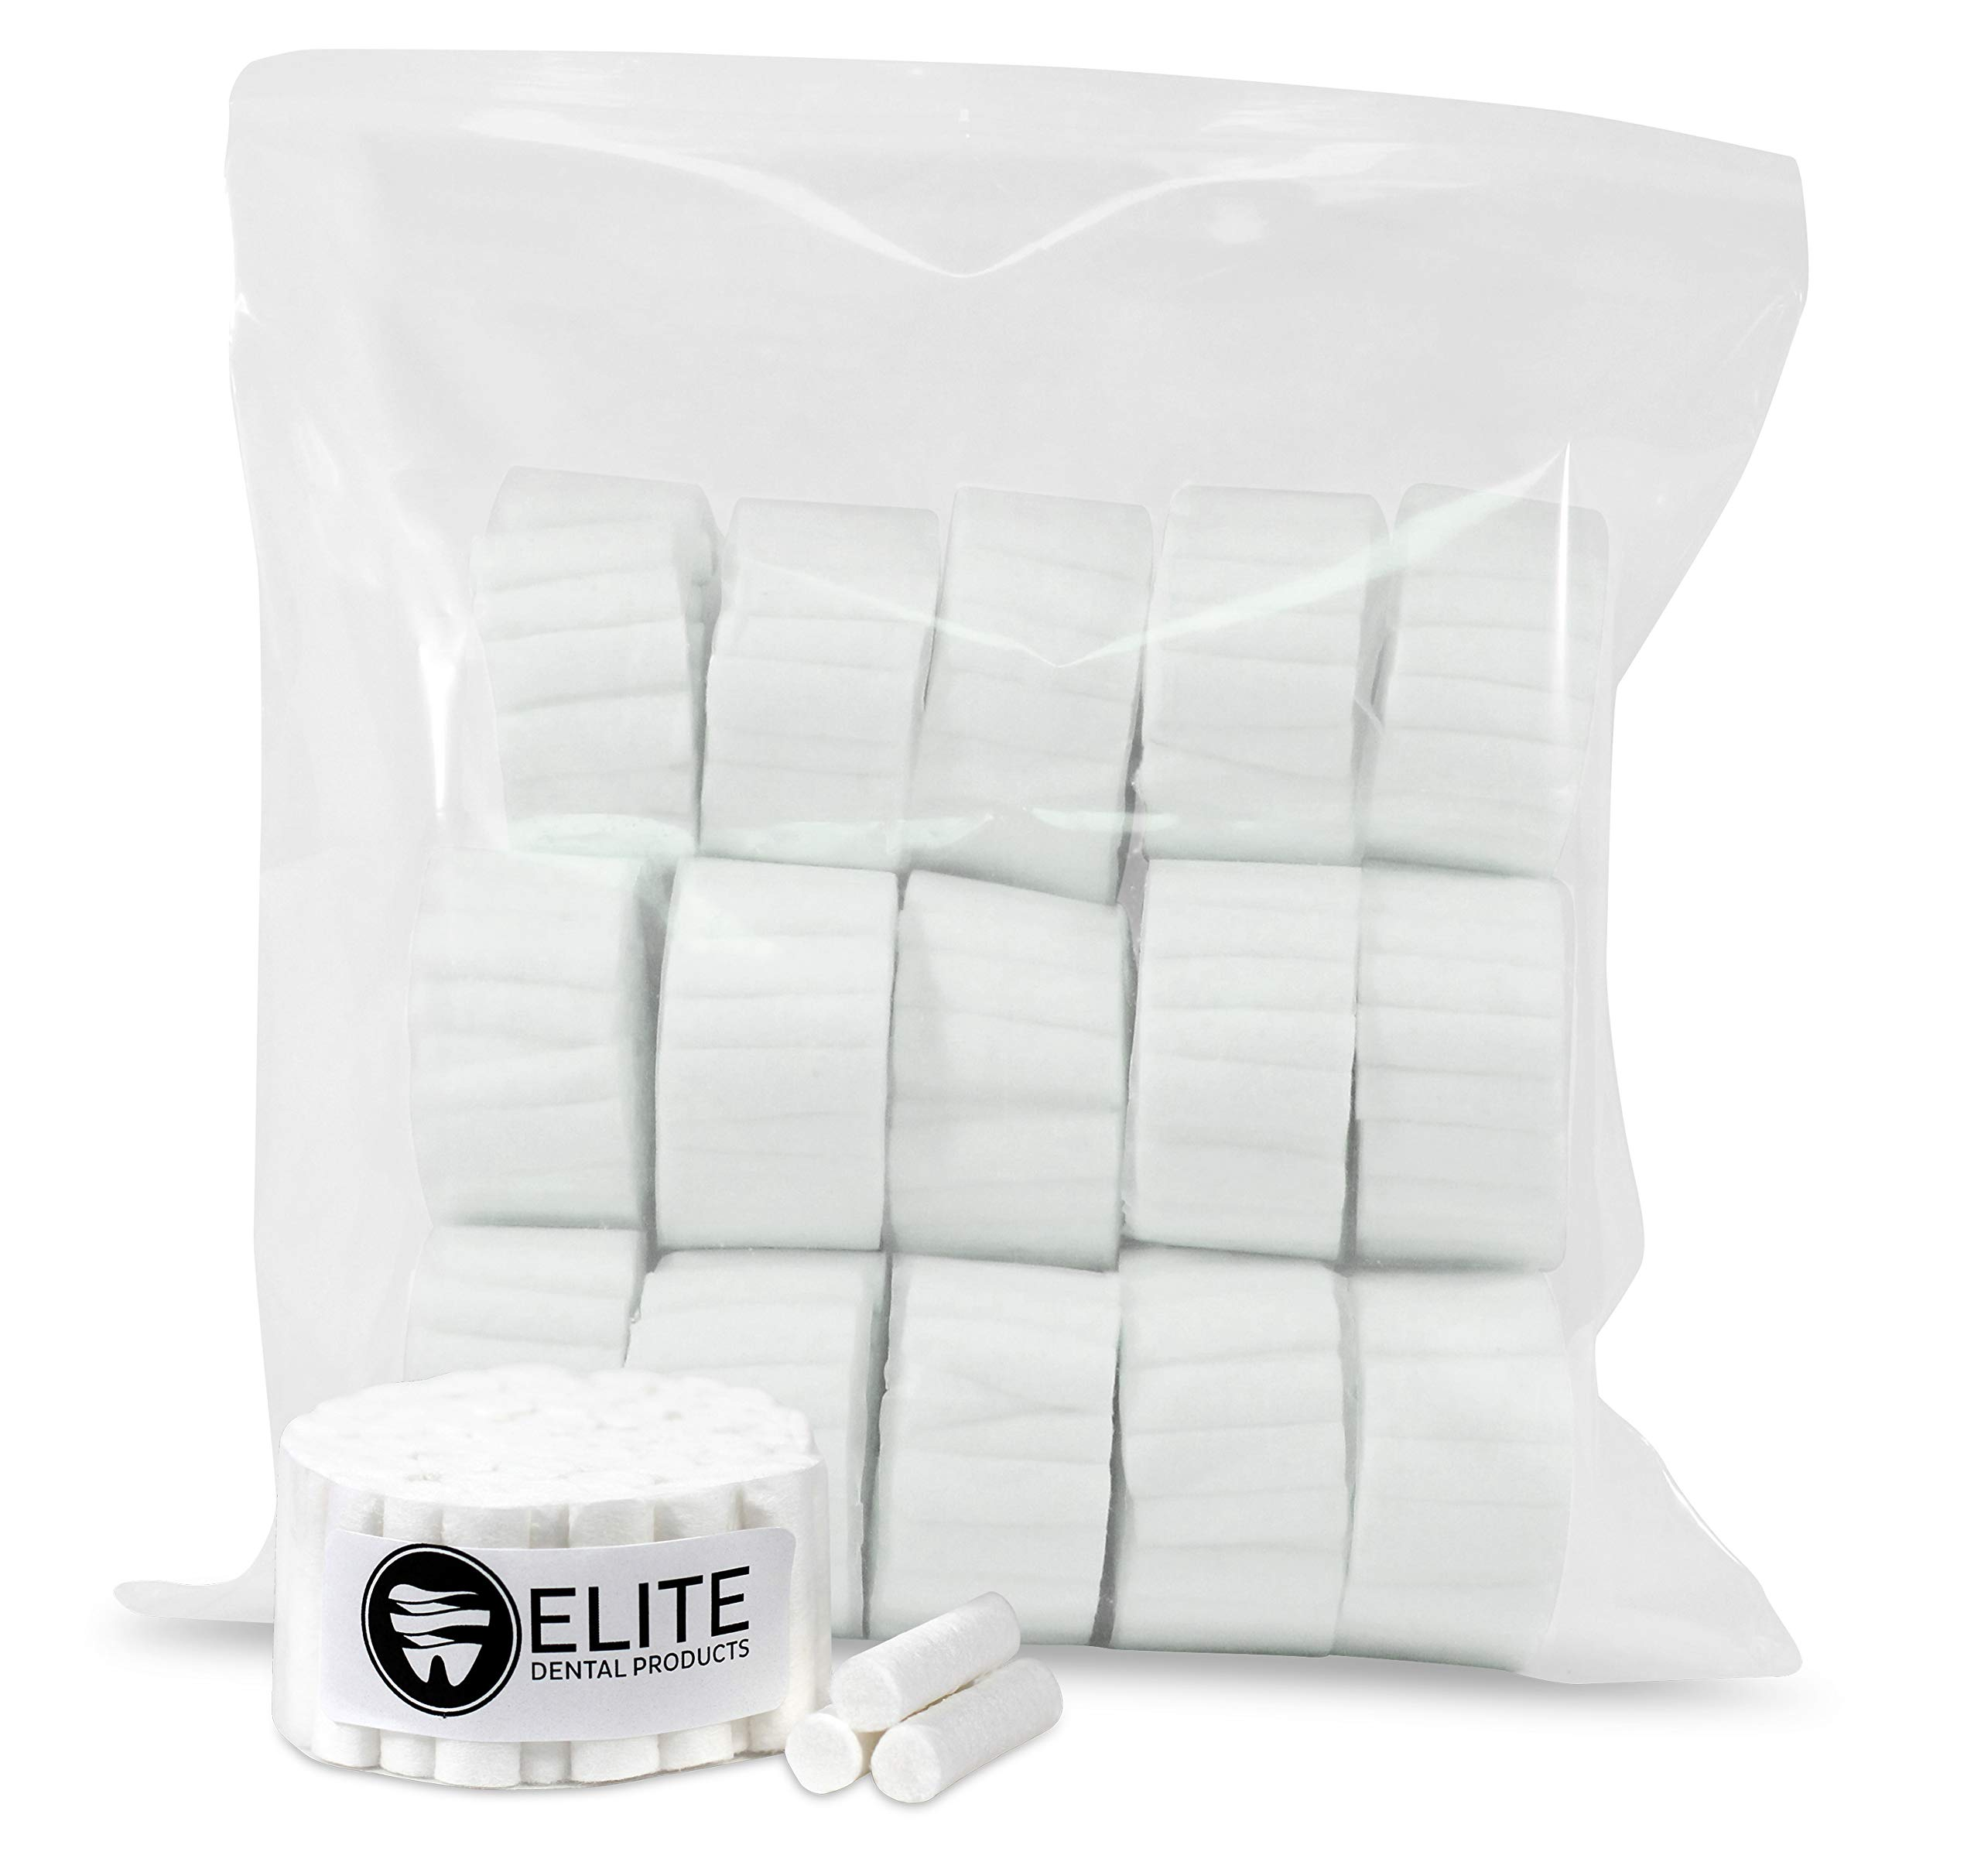 Cotton Rolls #2 Medium 1.5'' Non-Sterile 100% High Absorbent Cotton (Pack of 800) by Elite Dental Products